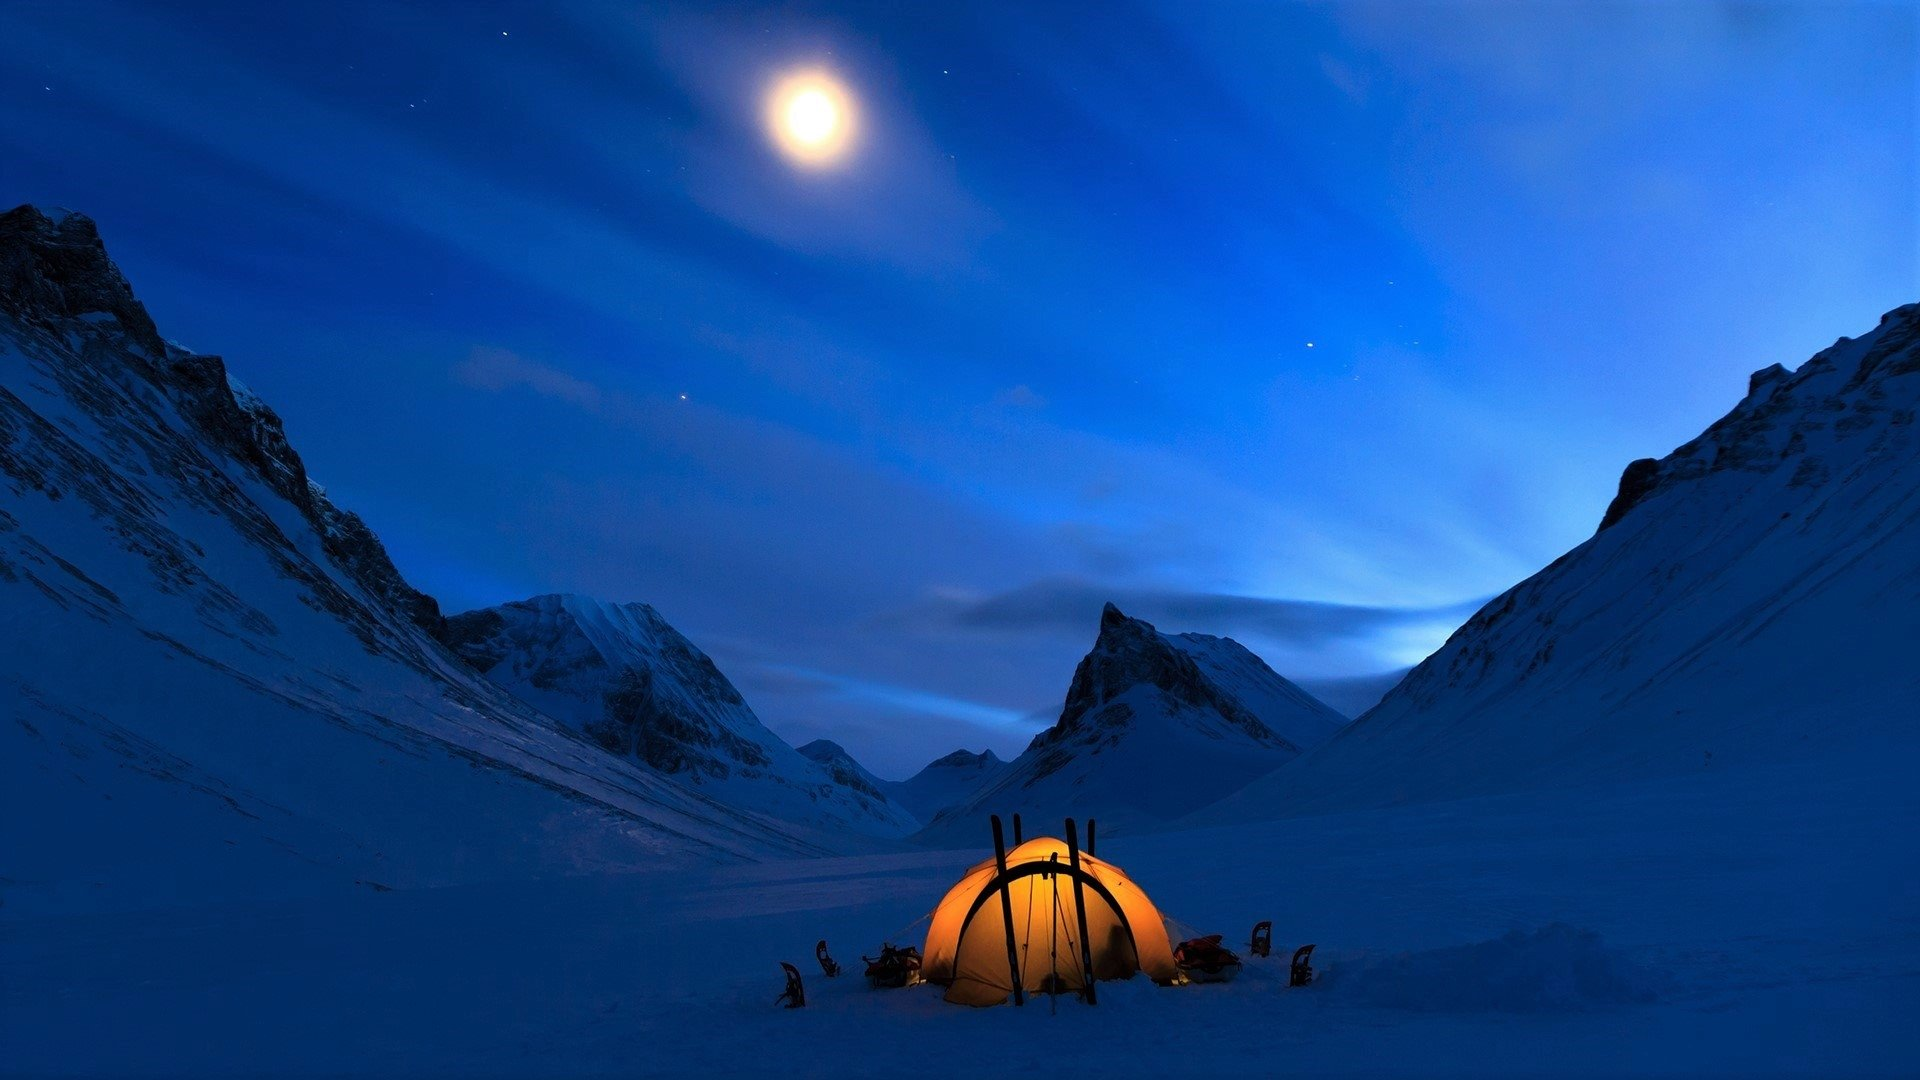 Winter Camping HD Wallpaper | Background Image | 1920x1080 ...